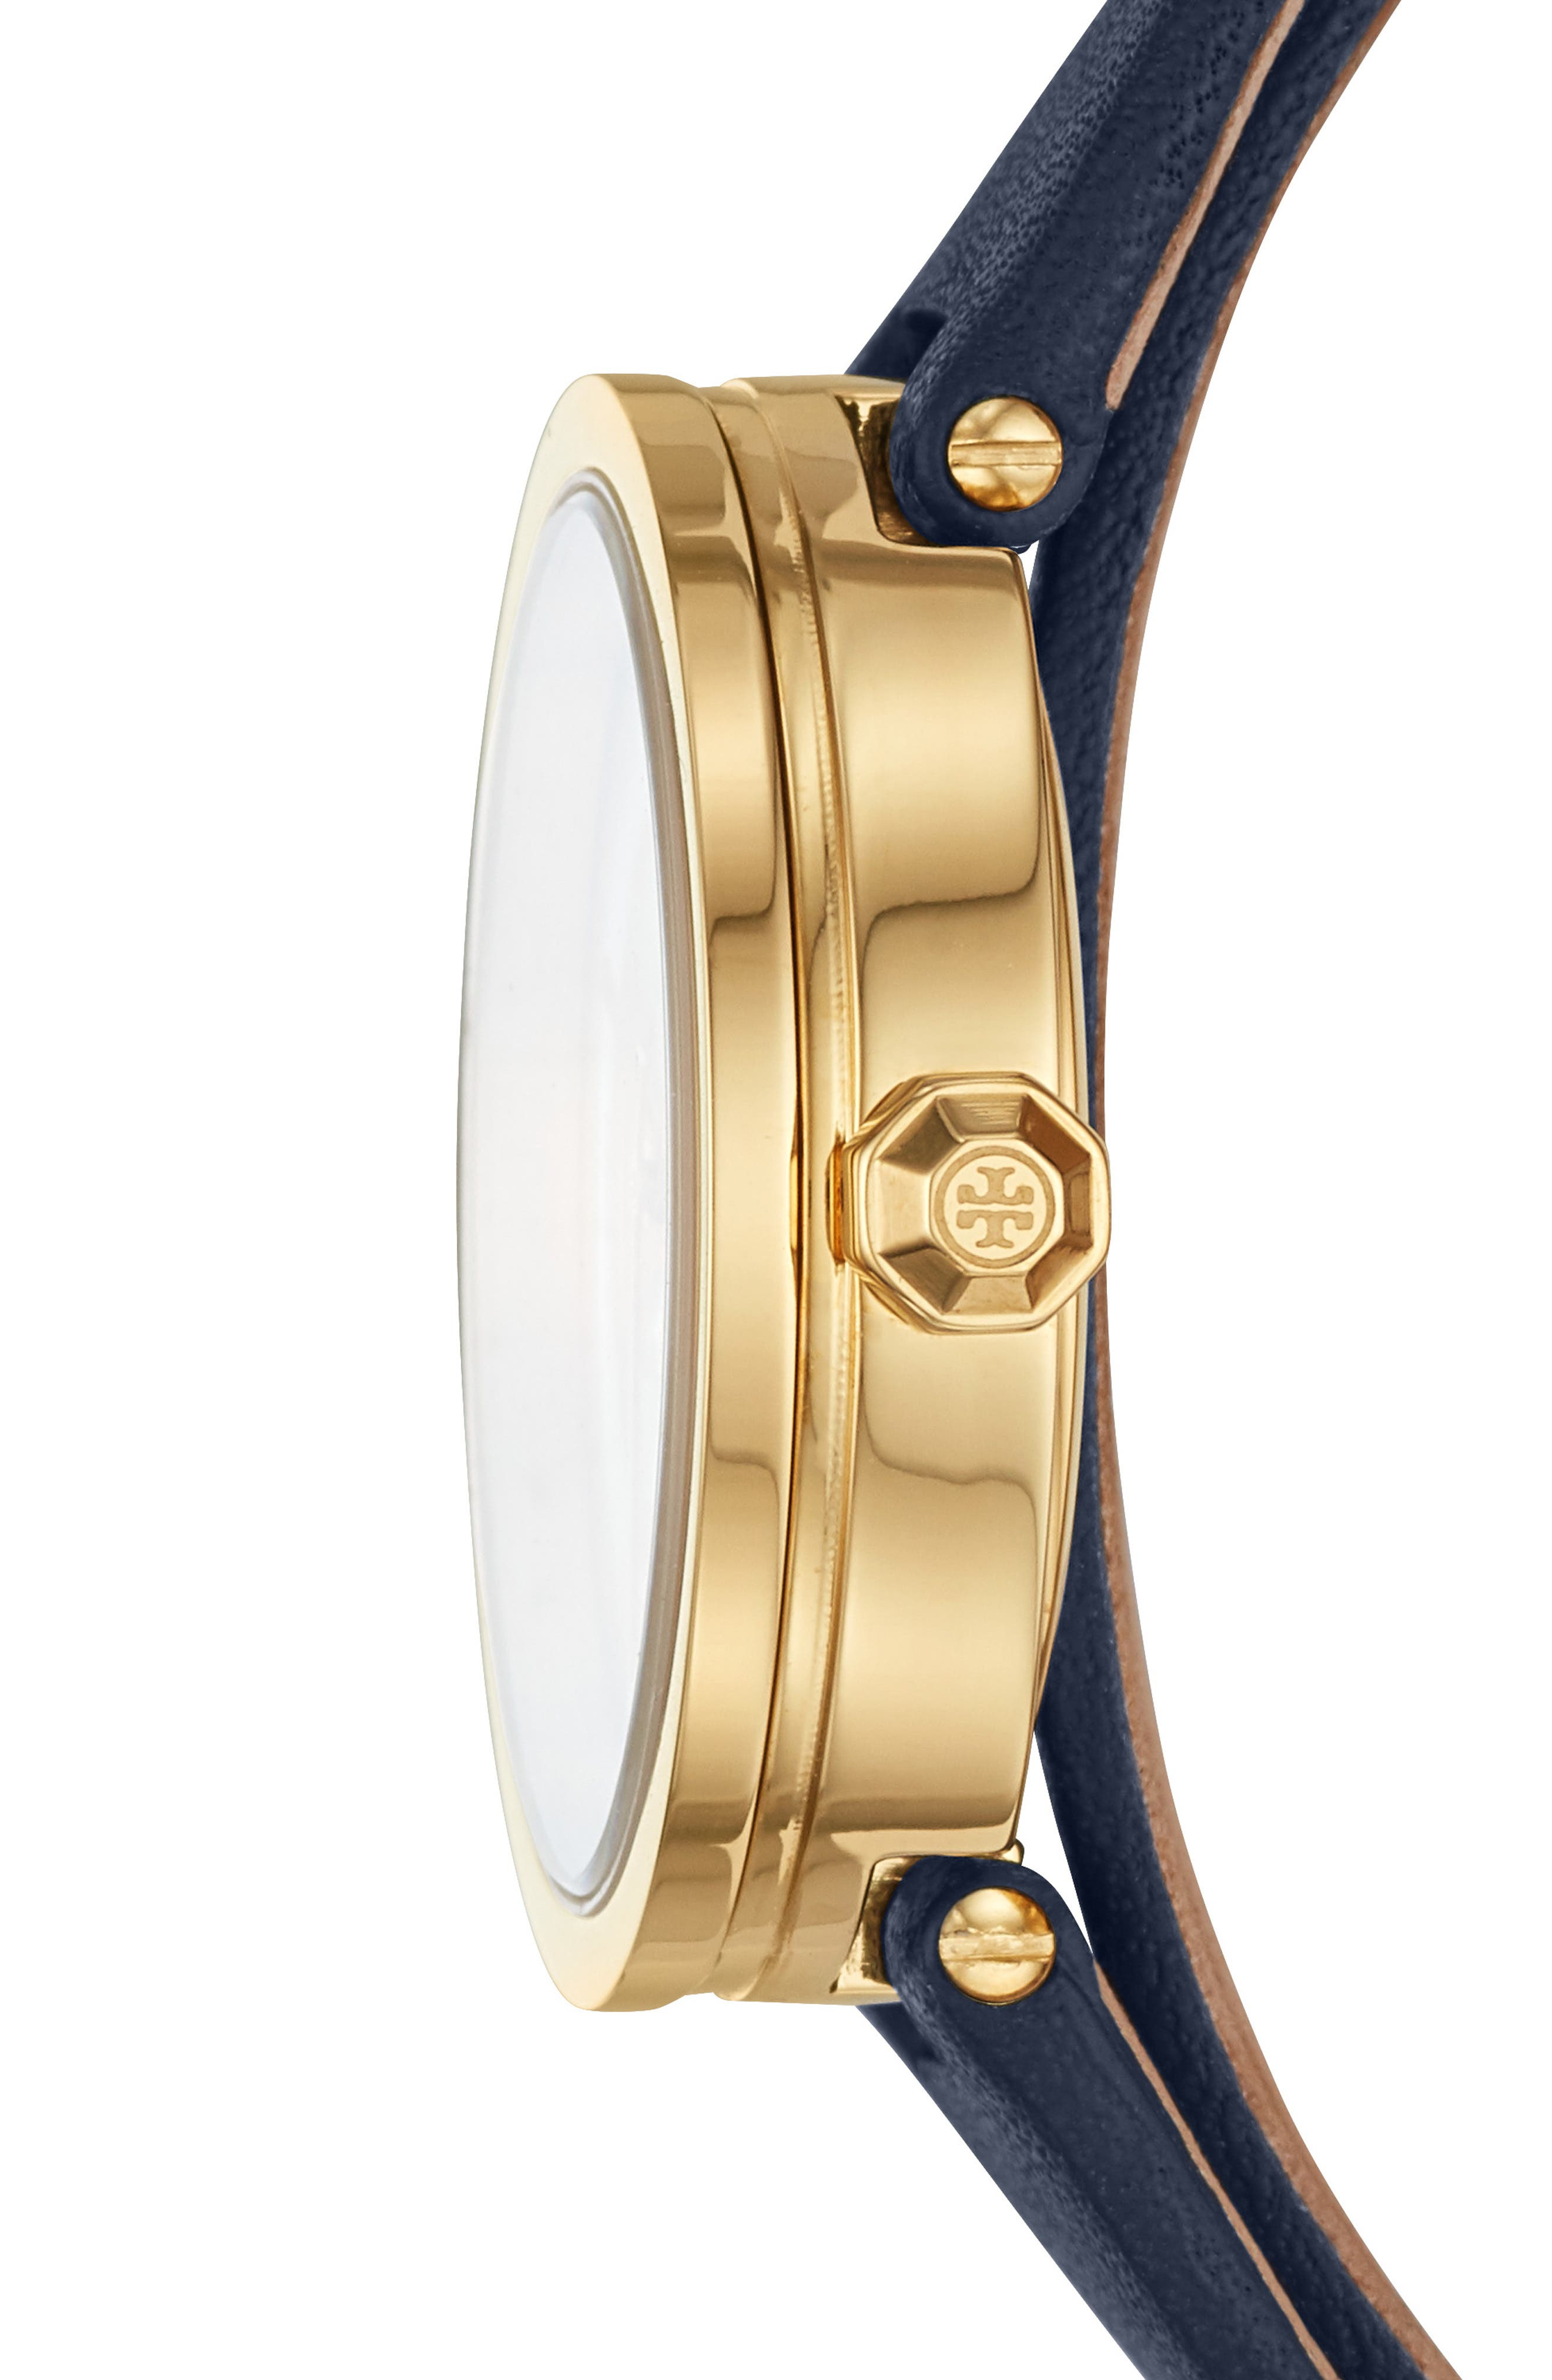 TORY BURCH, Reva Double Wrap Leather Strap Watch, 29mm, Alternate thumbnail 2, color, BLUE/ MOP/ GOLD